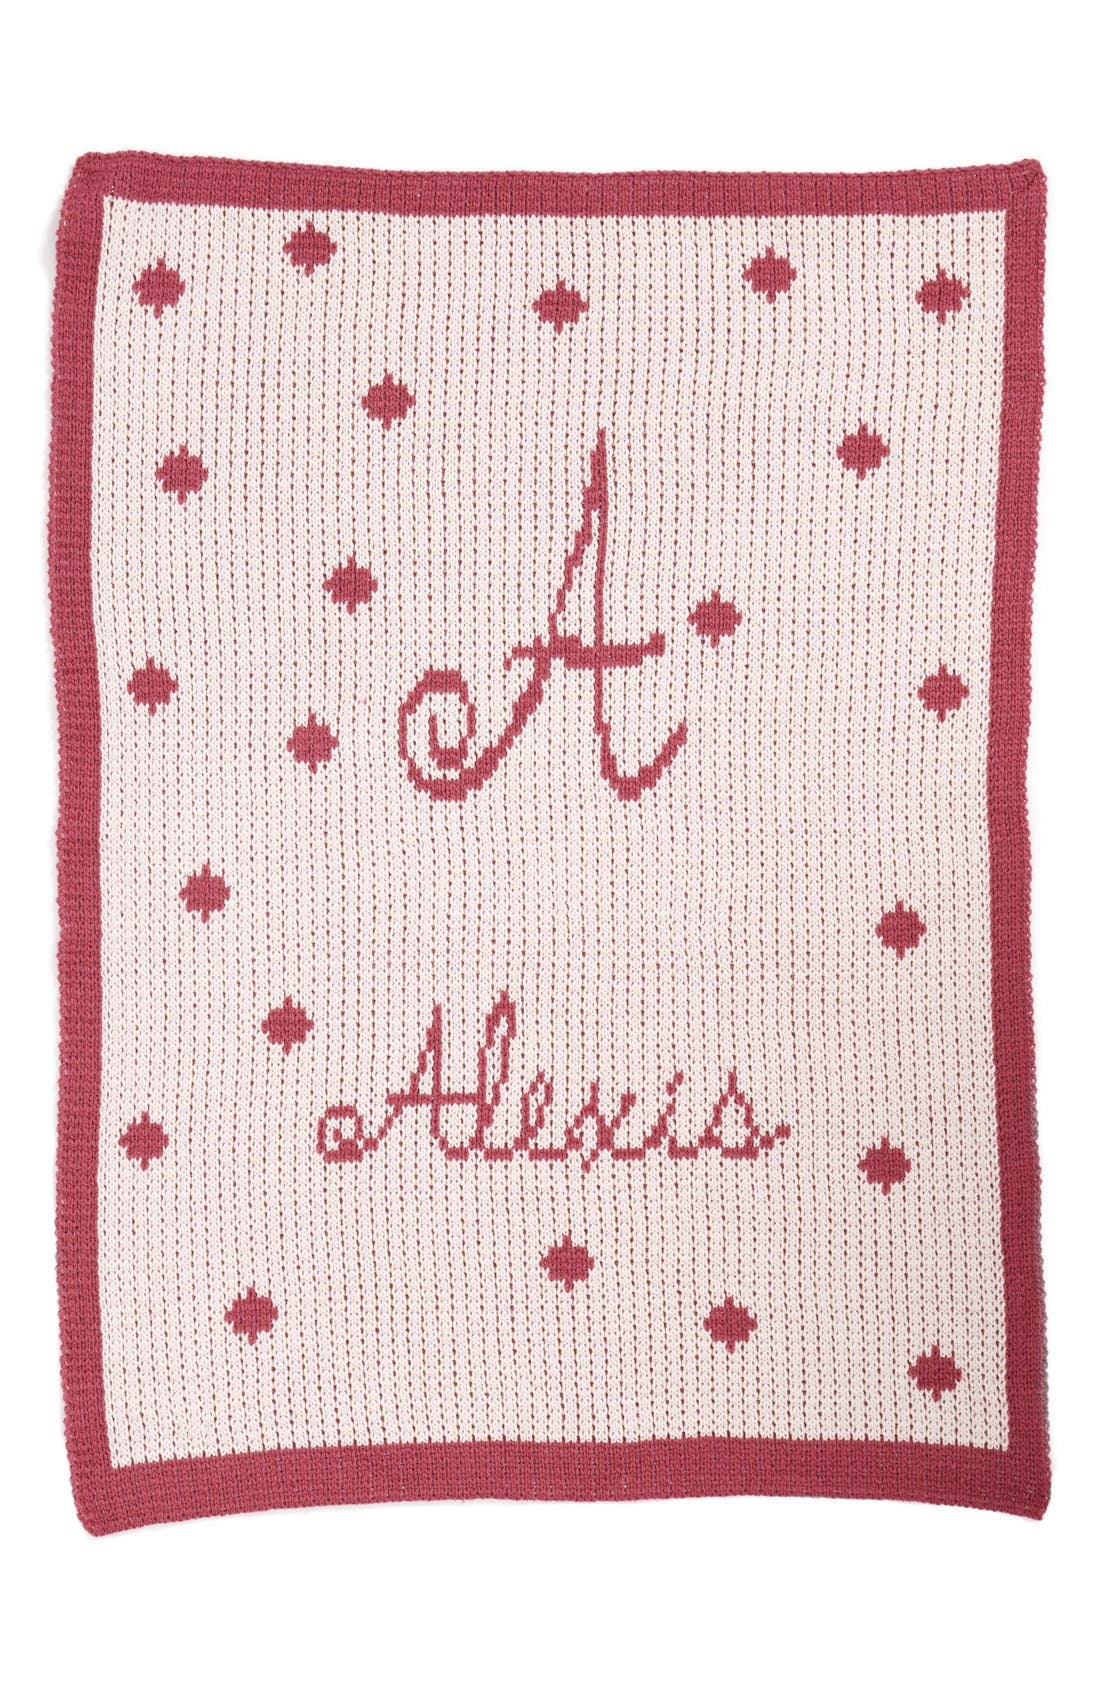 'Polka Dots - Large' Personalized Stroller Blanket,                             Main thumbnail 1, color,                             Pale Pink/ Mulberry